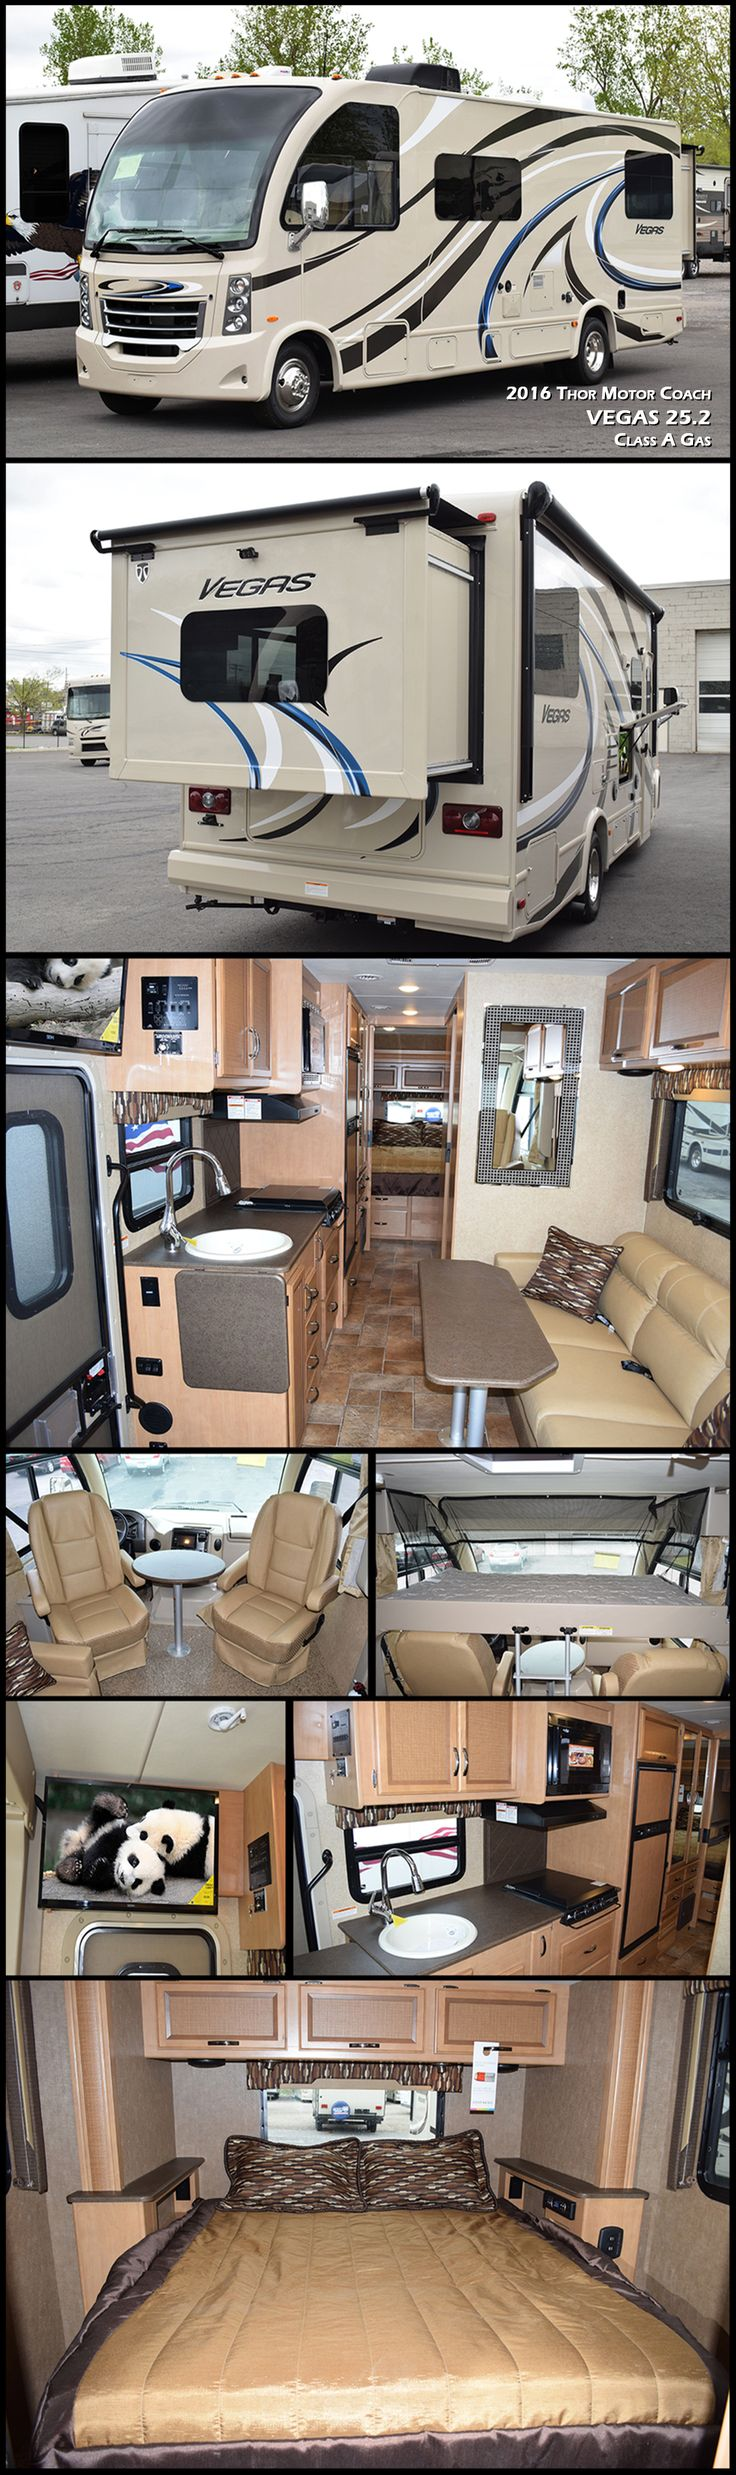 "Check Out The All-New 2016 Vegas 25.2 Class A Gas Motorhome by Thor Motor Coach. This is what Thor considers an RUV or ""Recreational Utility Vehicle"" because it is intended to be used for everything from your mobile hotel room when your kids have an out of town sports game, to your home-away-from-home on a cross country road trip!"